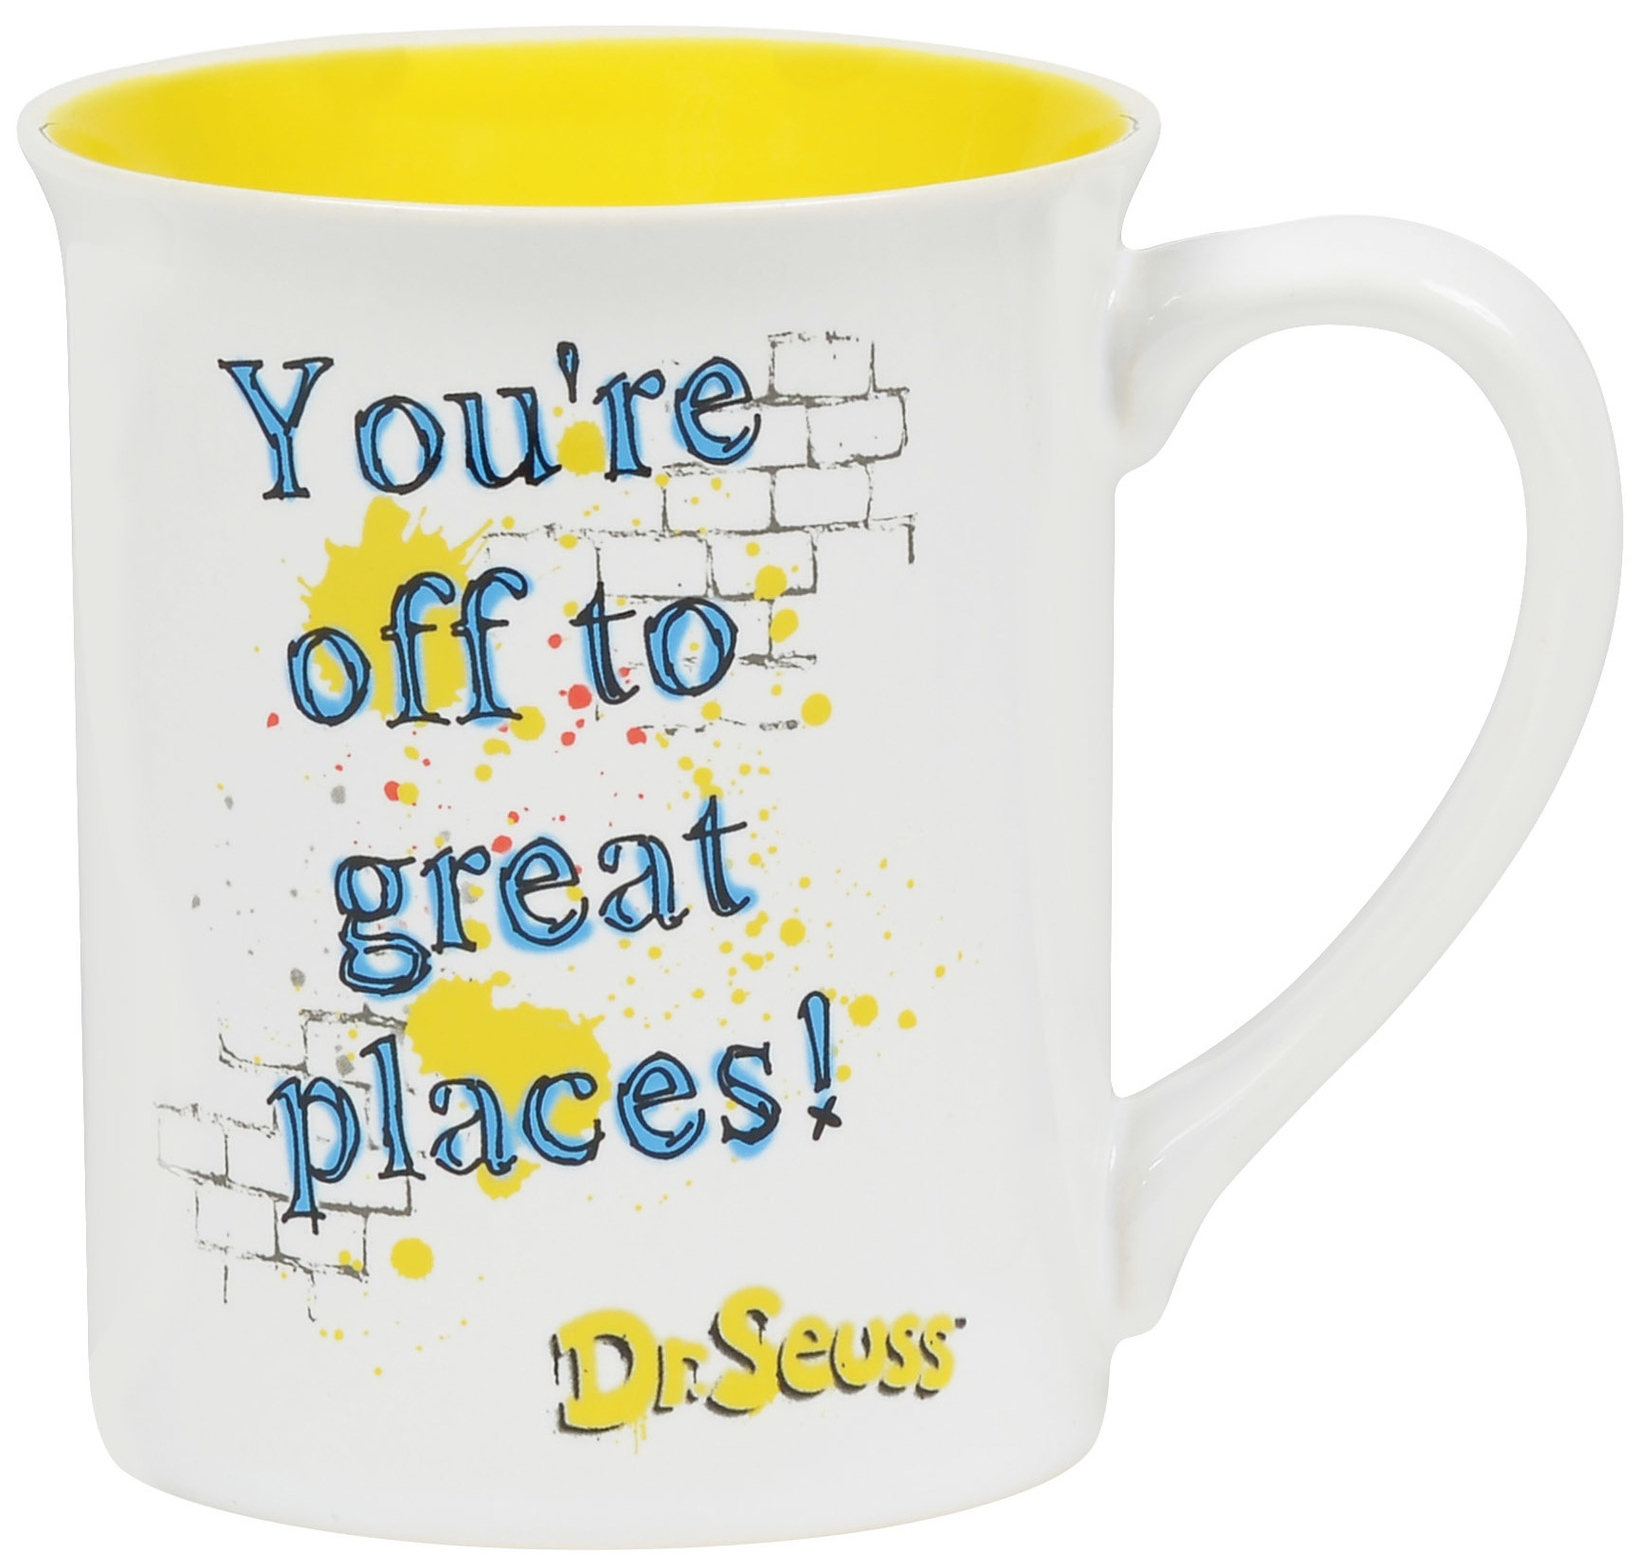 Dr. Seuss by Department 56 6002606 You're Off Mug   $12.99